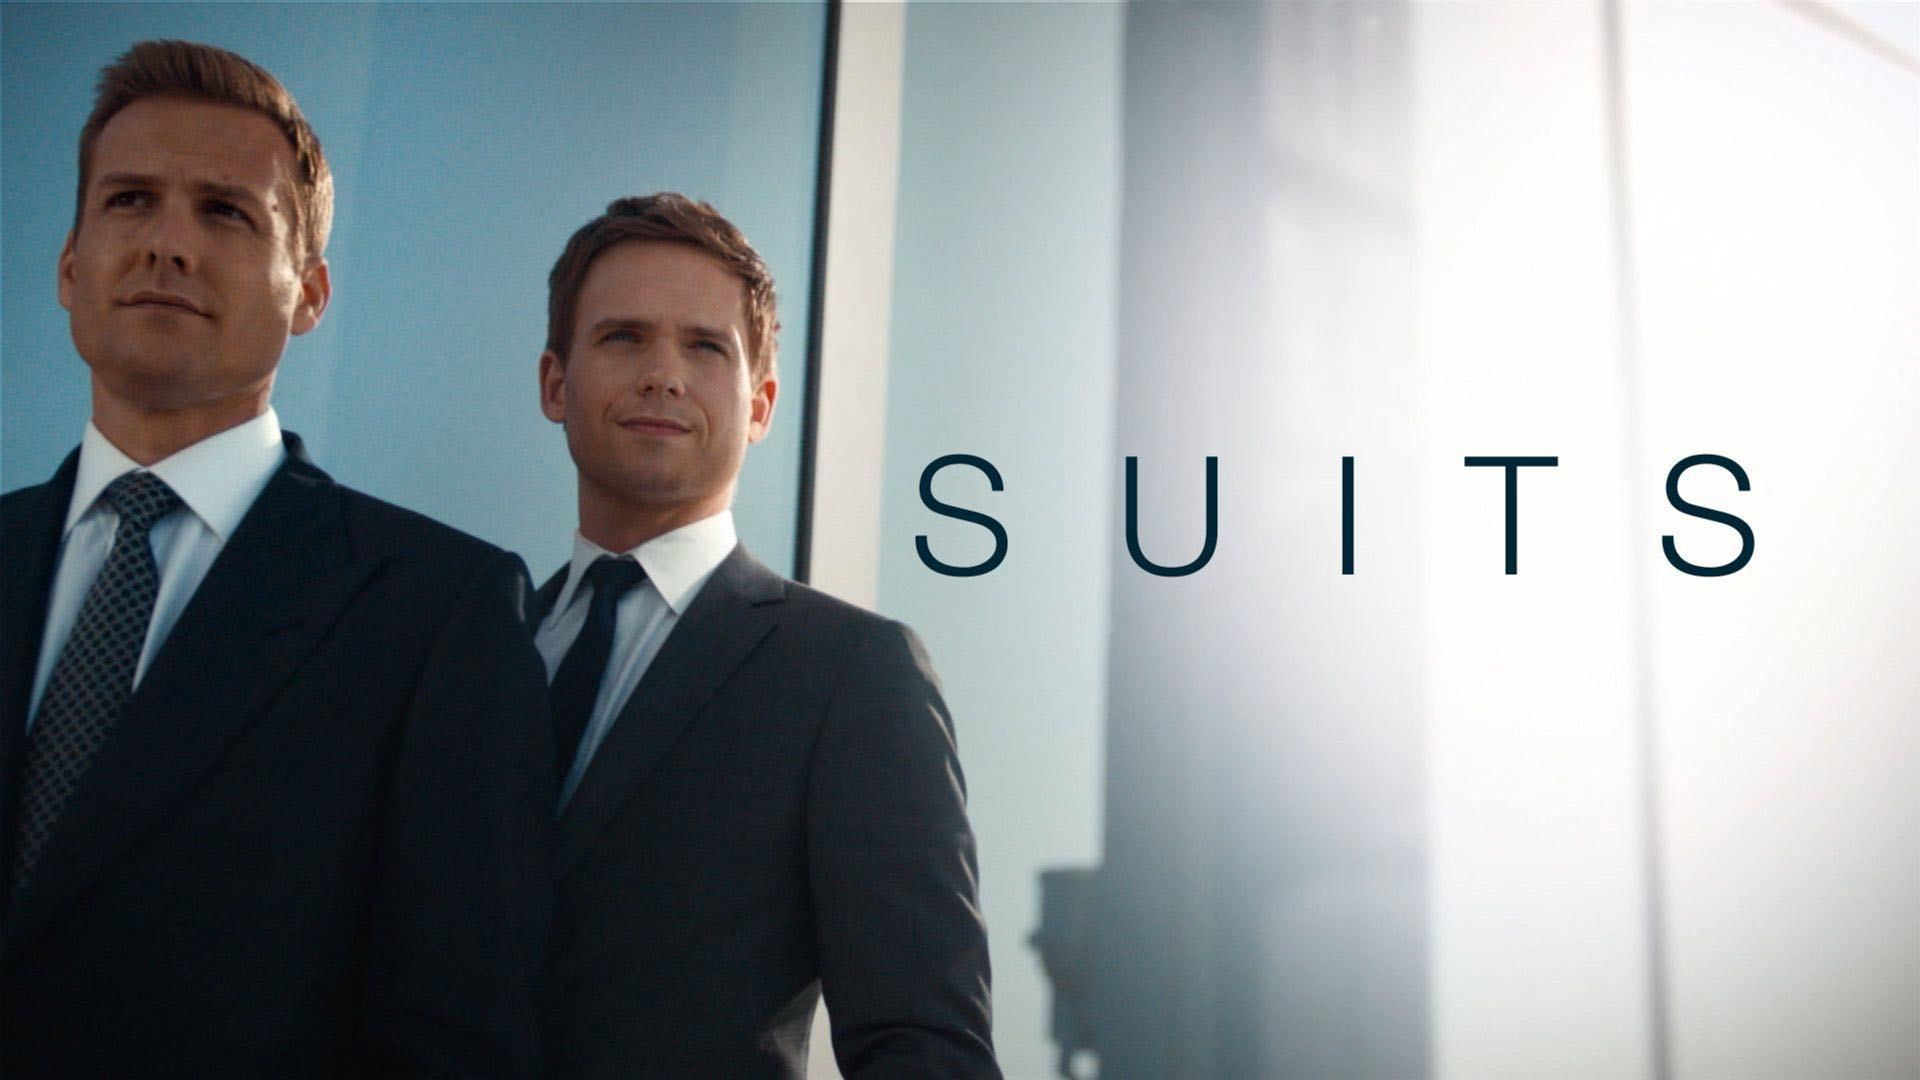 Suits 8x5 - Good Mudding